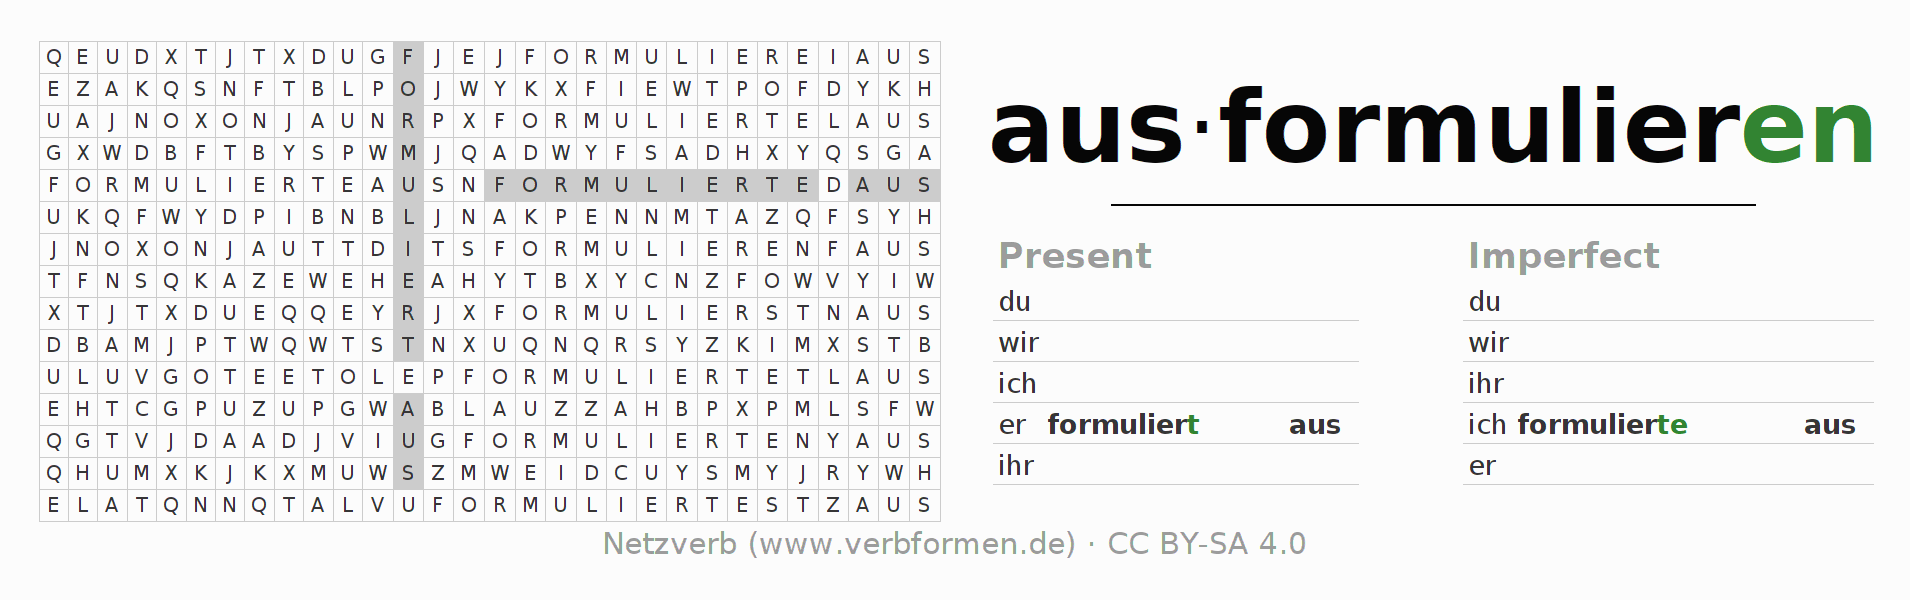 Word search puzzle for the conjugation of the verb ausformulieren